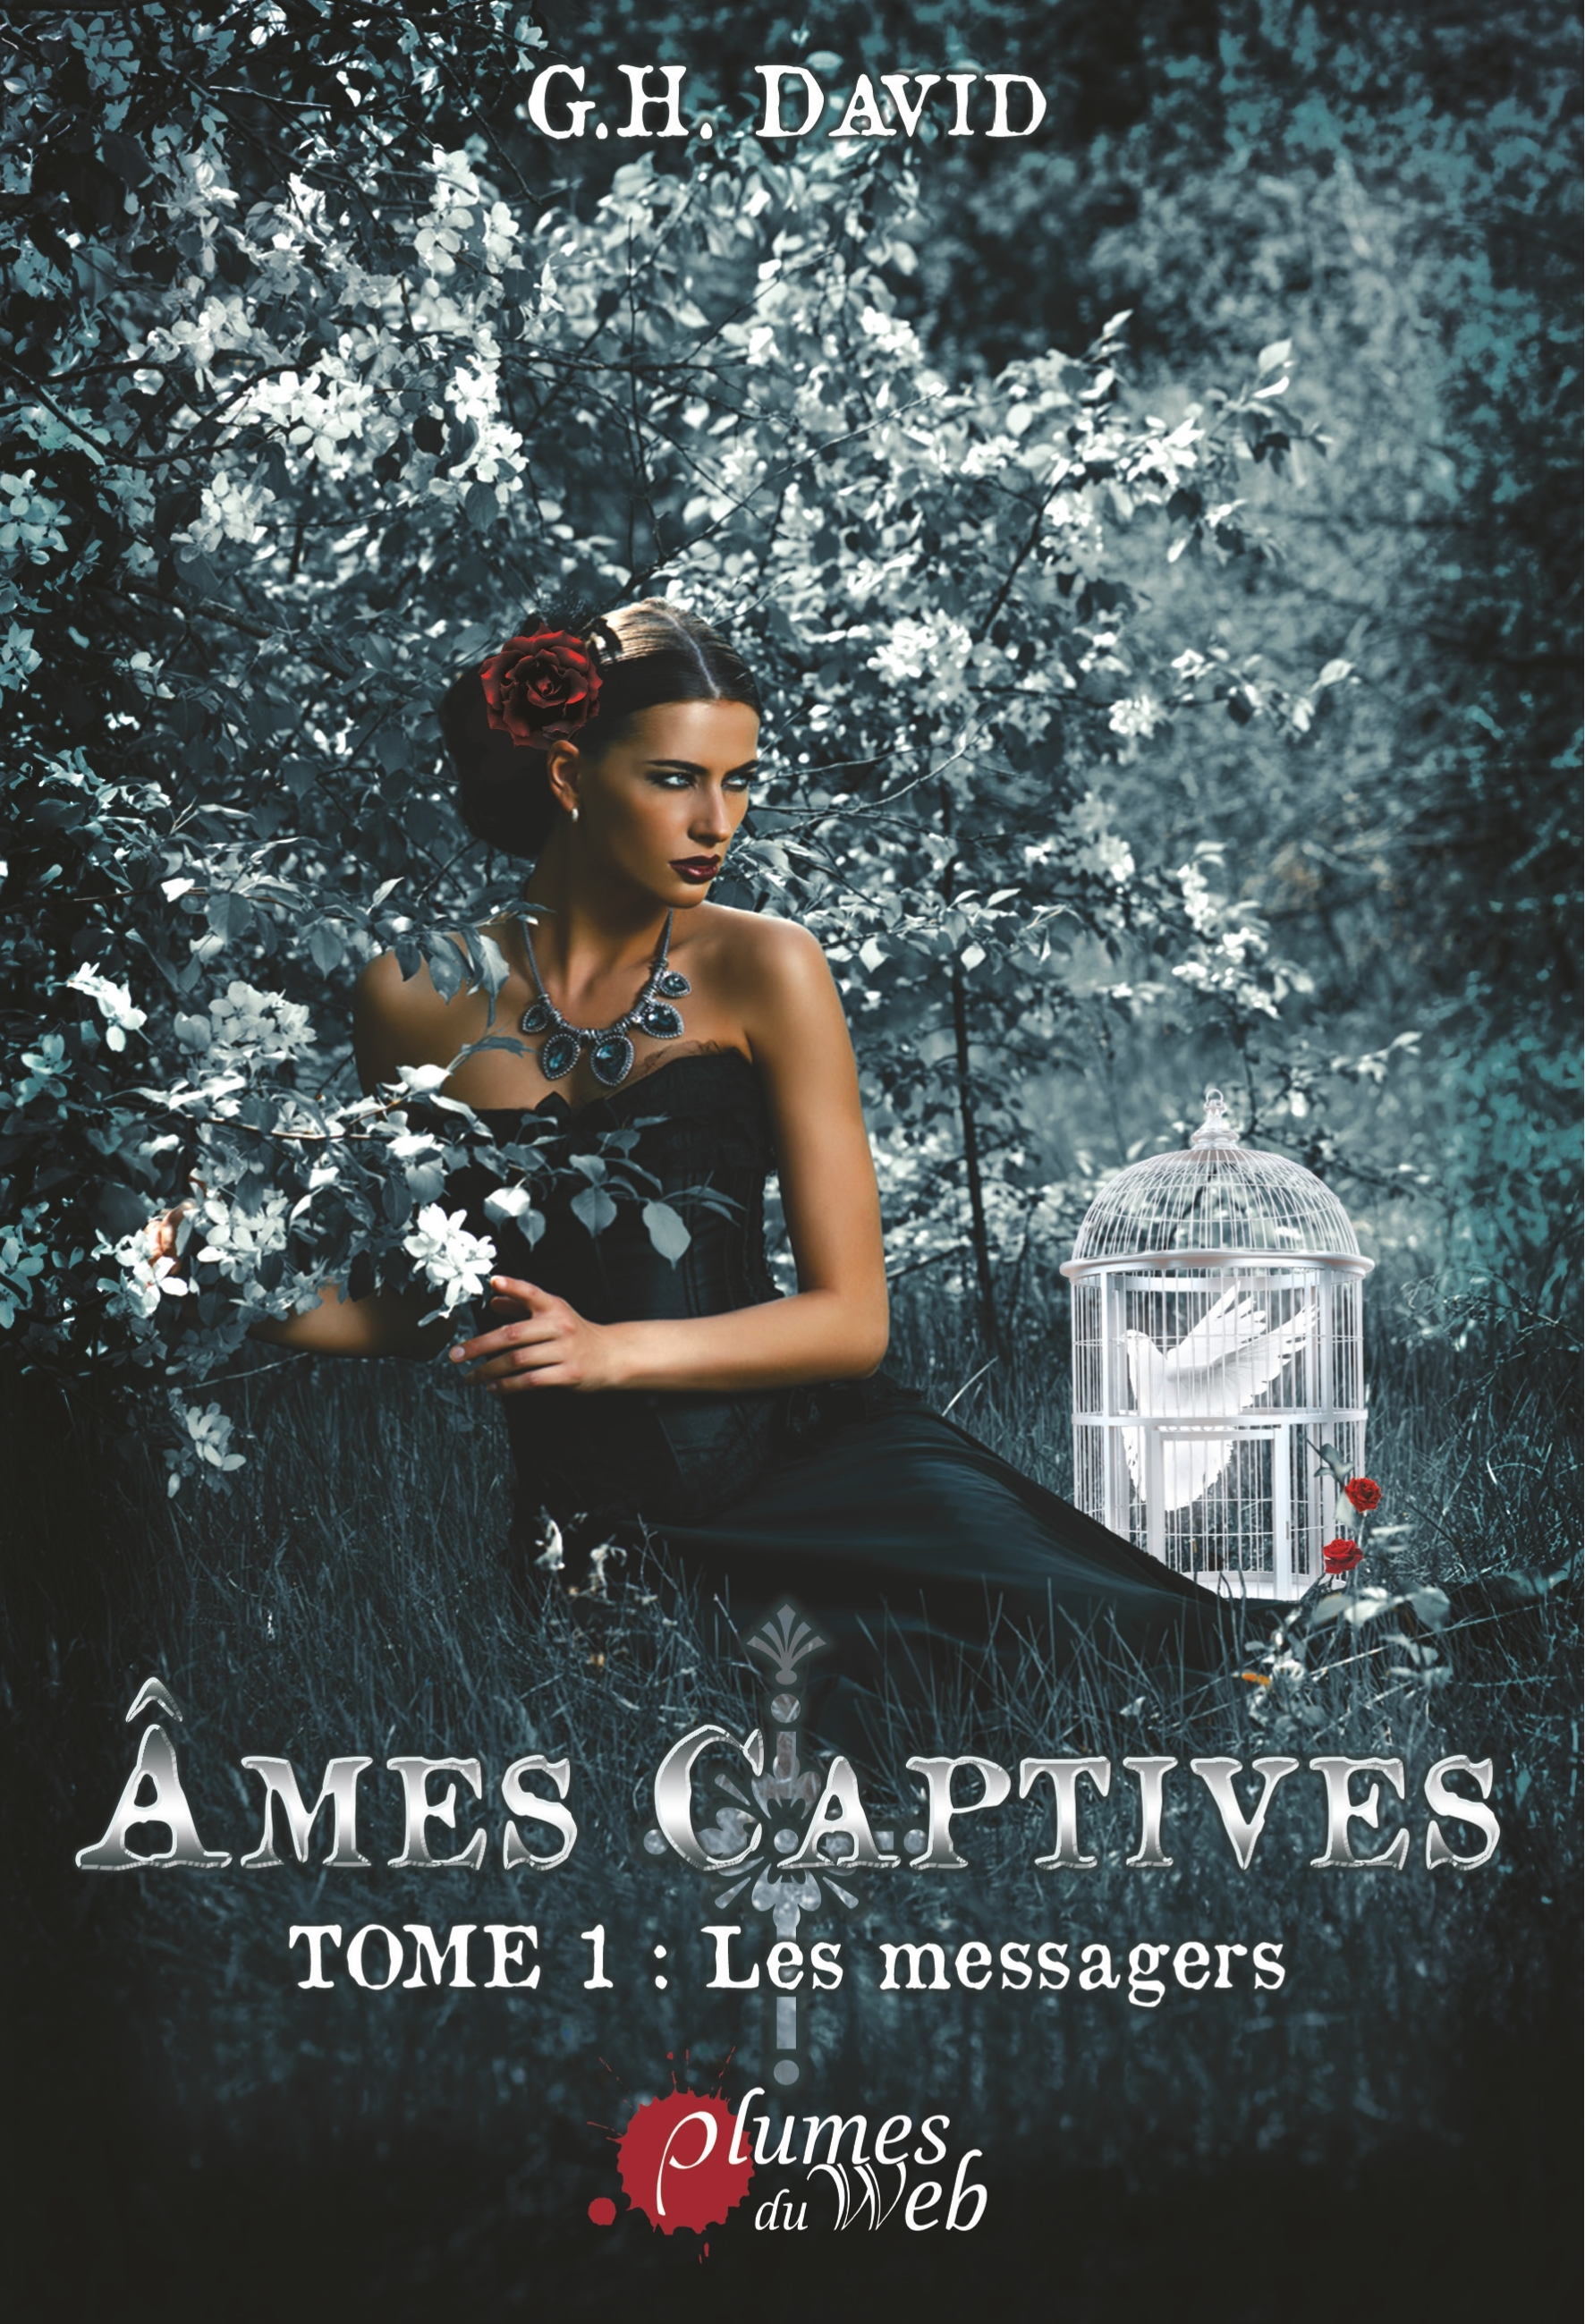 AMES CAPTIVES, TOME 1 : LES MESSAGERS